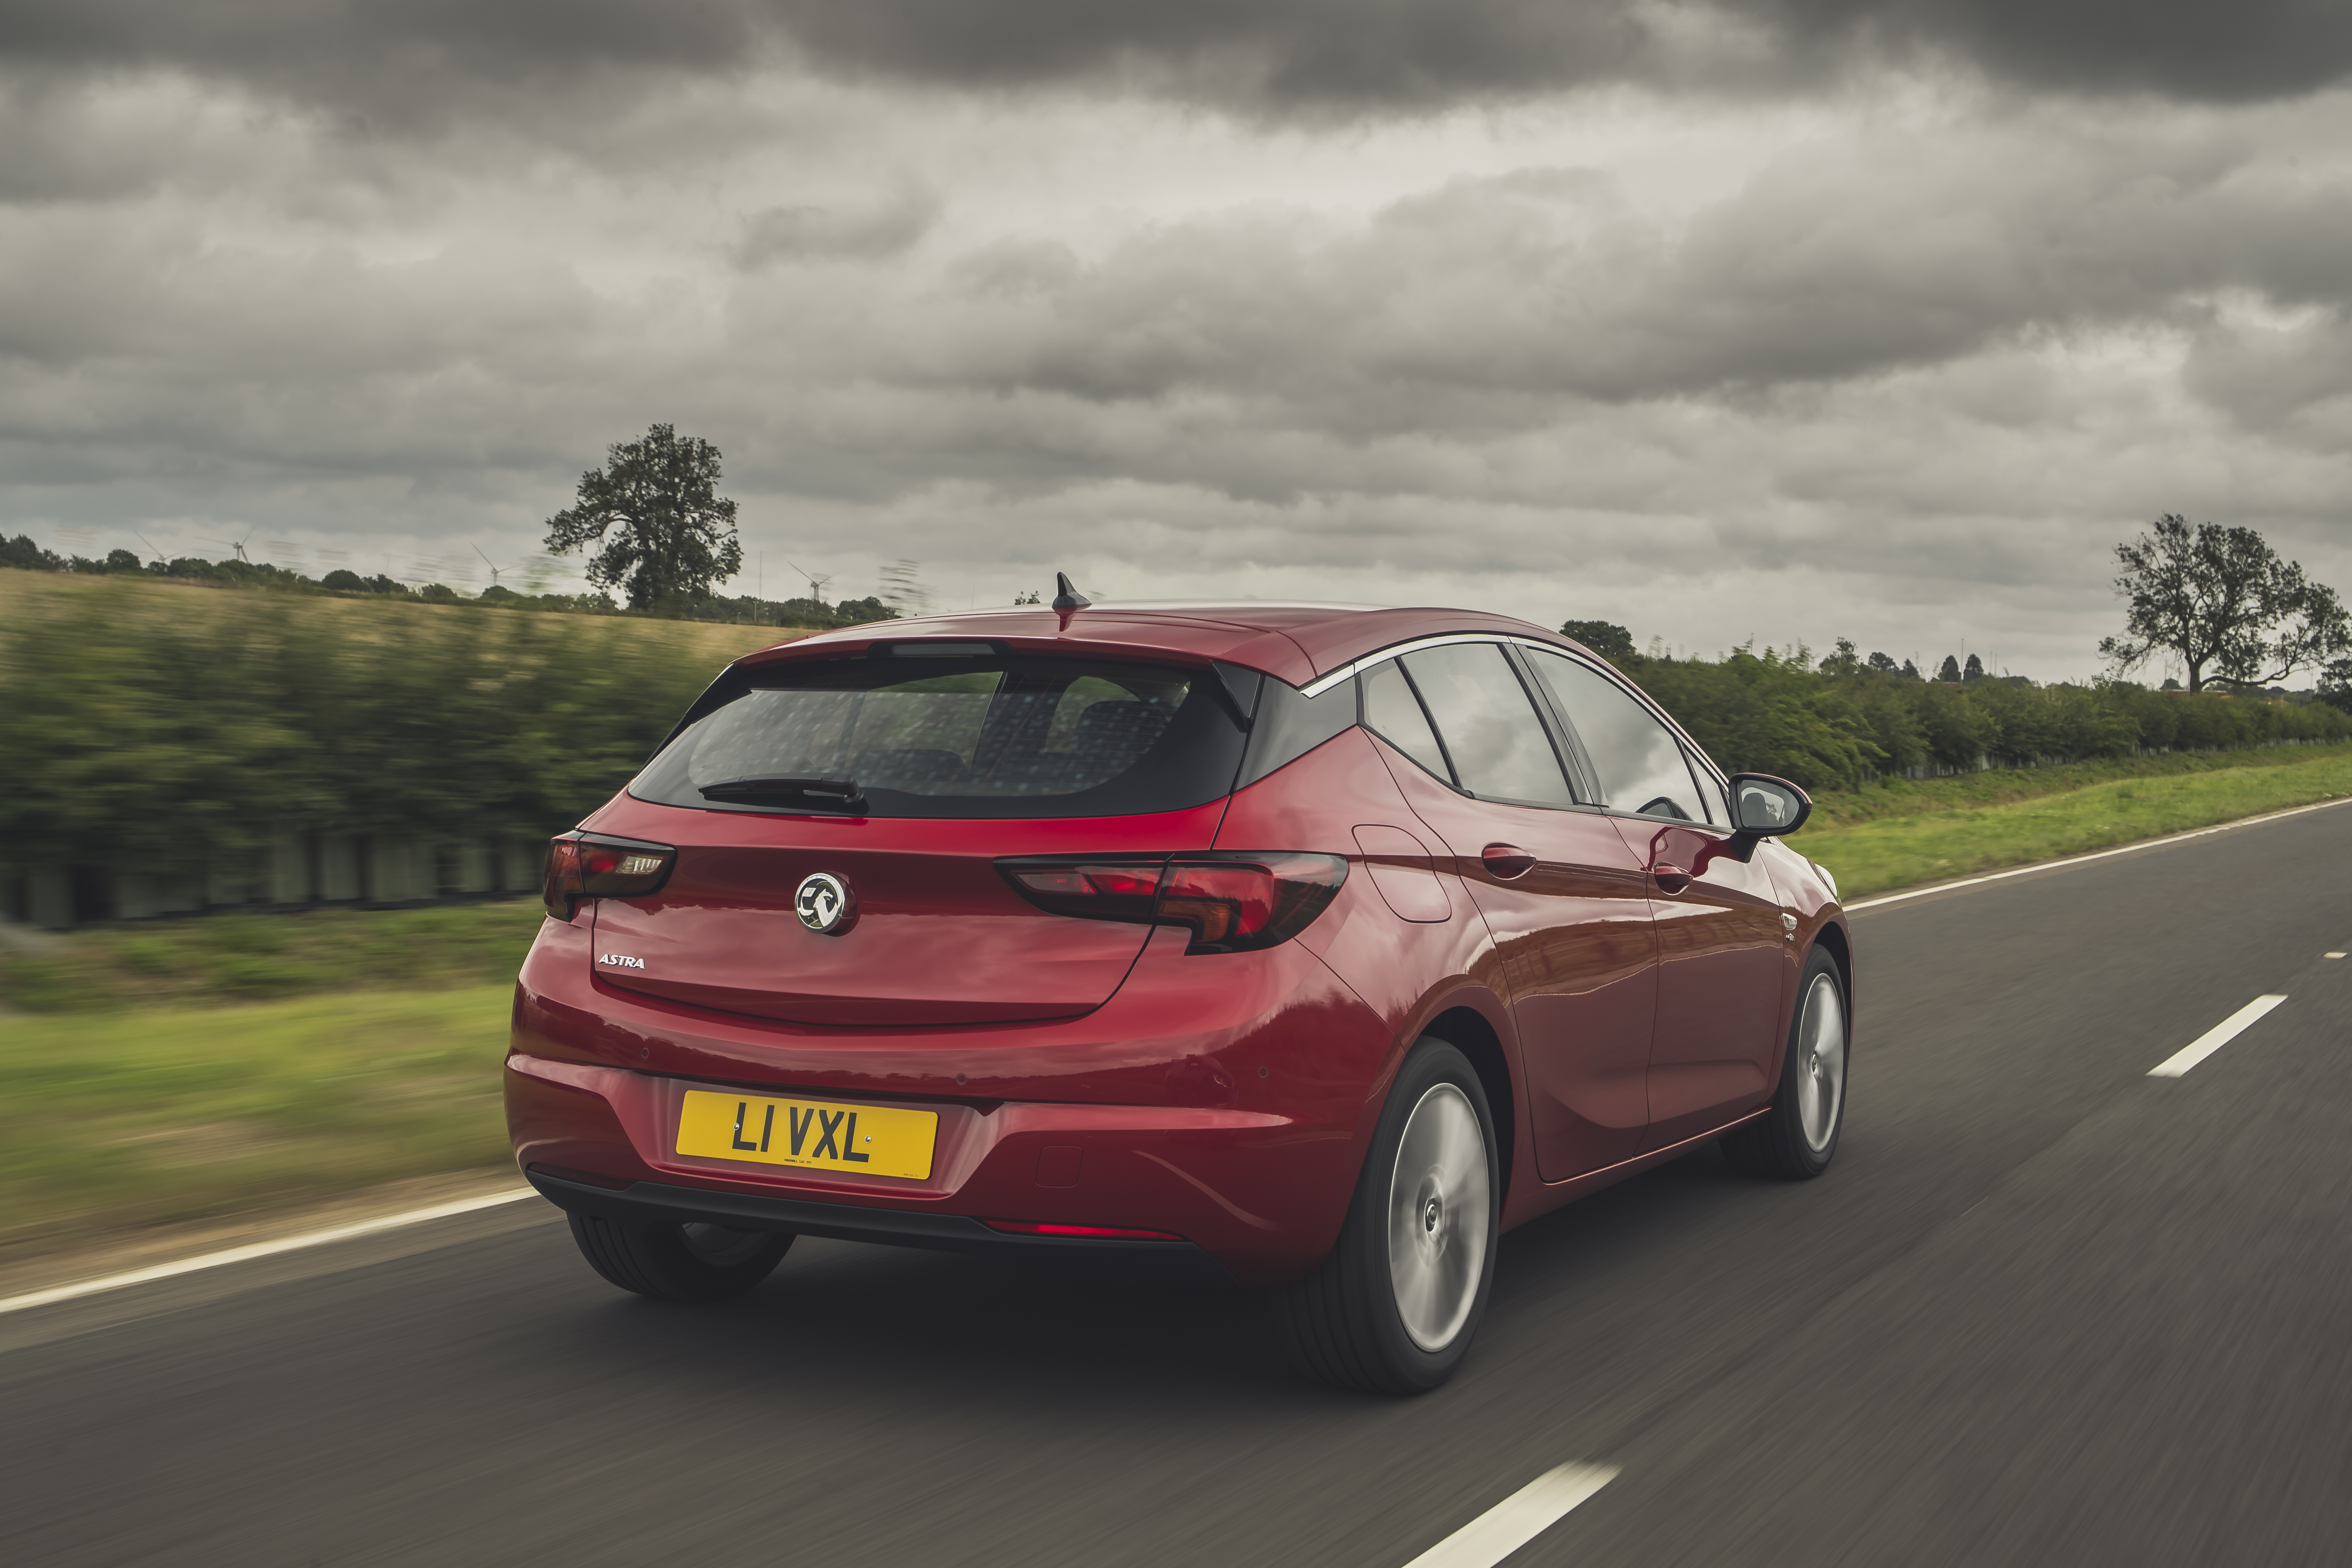 First Drive: A mid-life refresh retains the Vauxhall Astra's